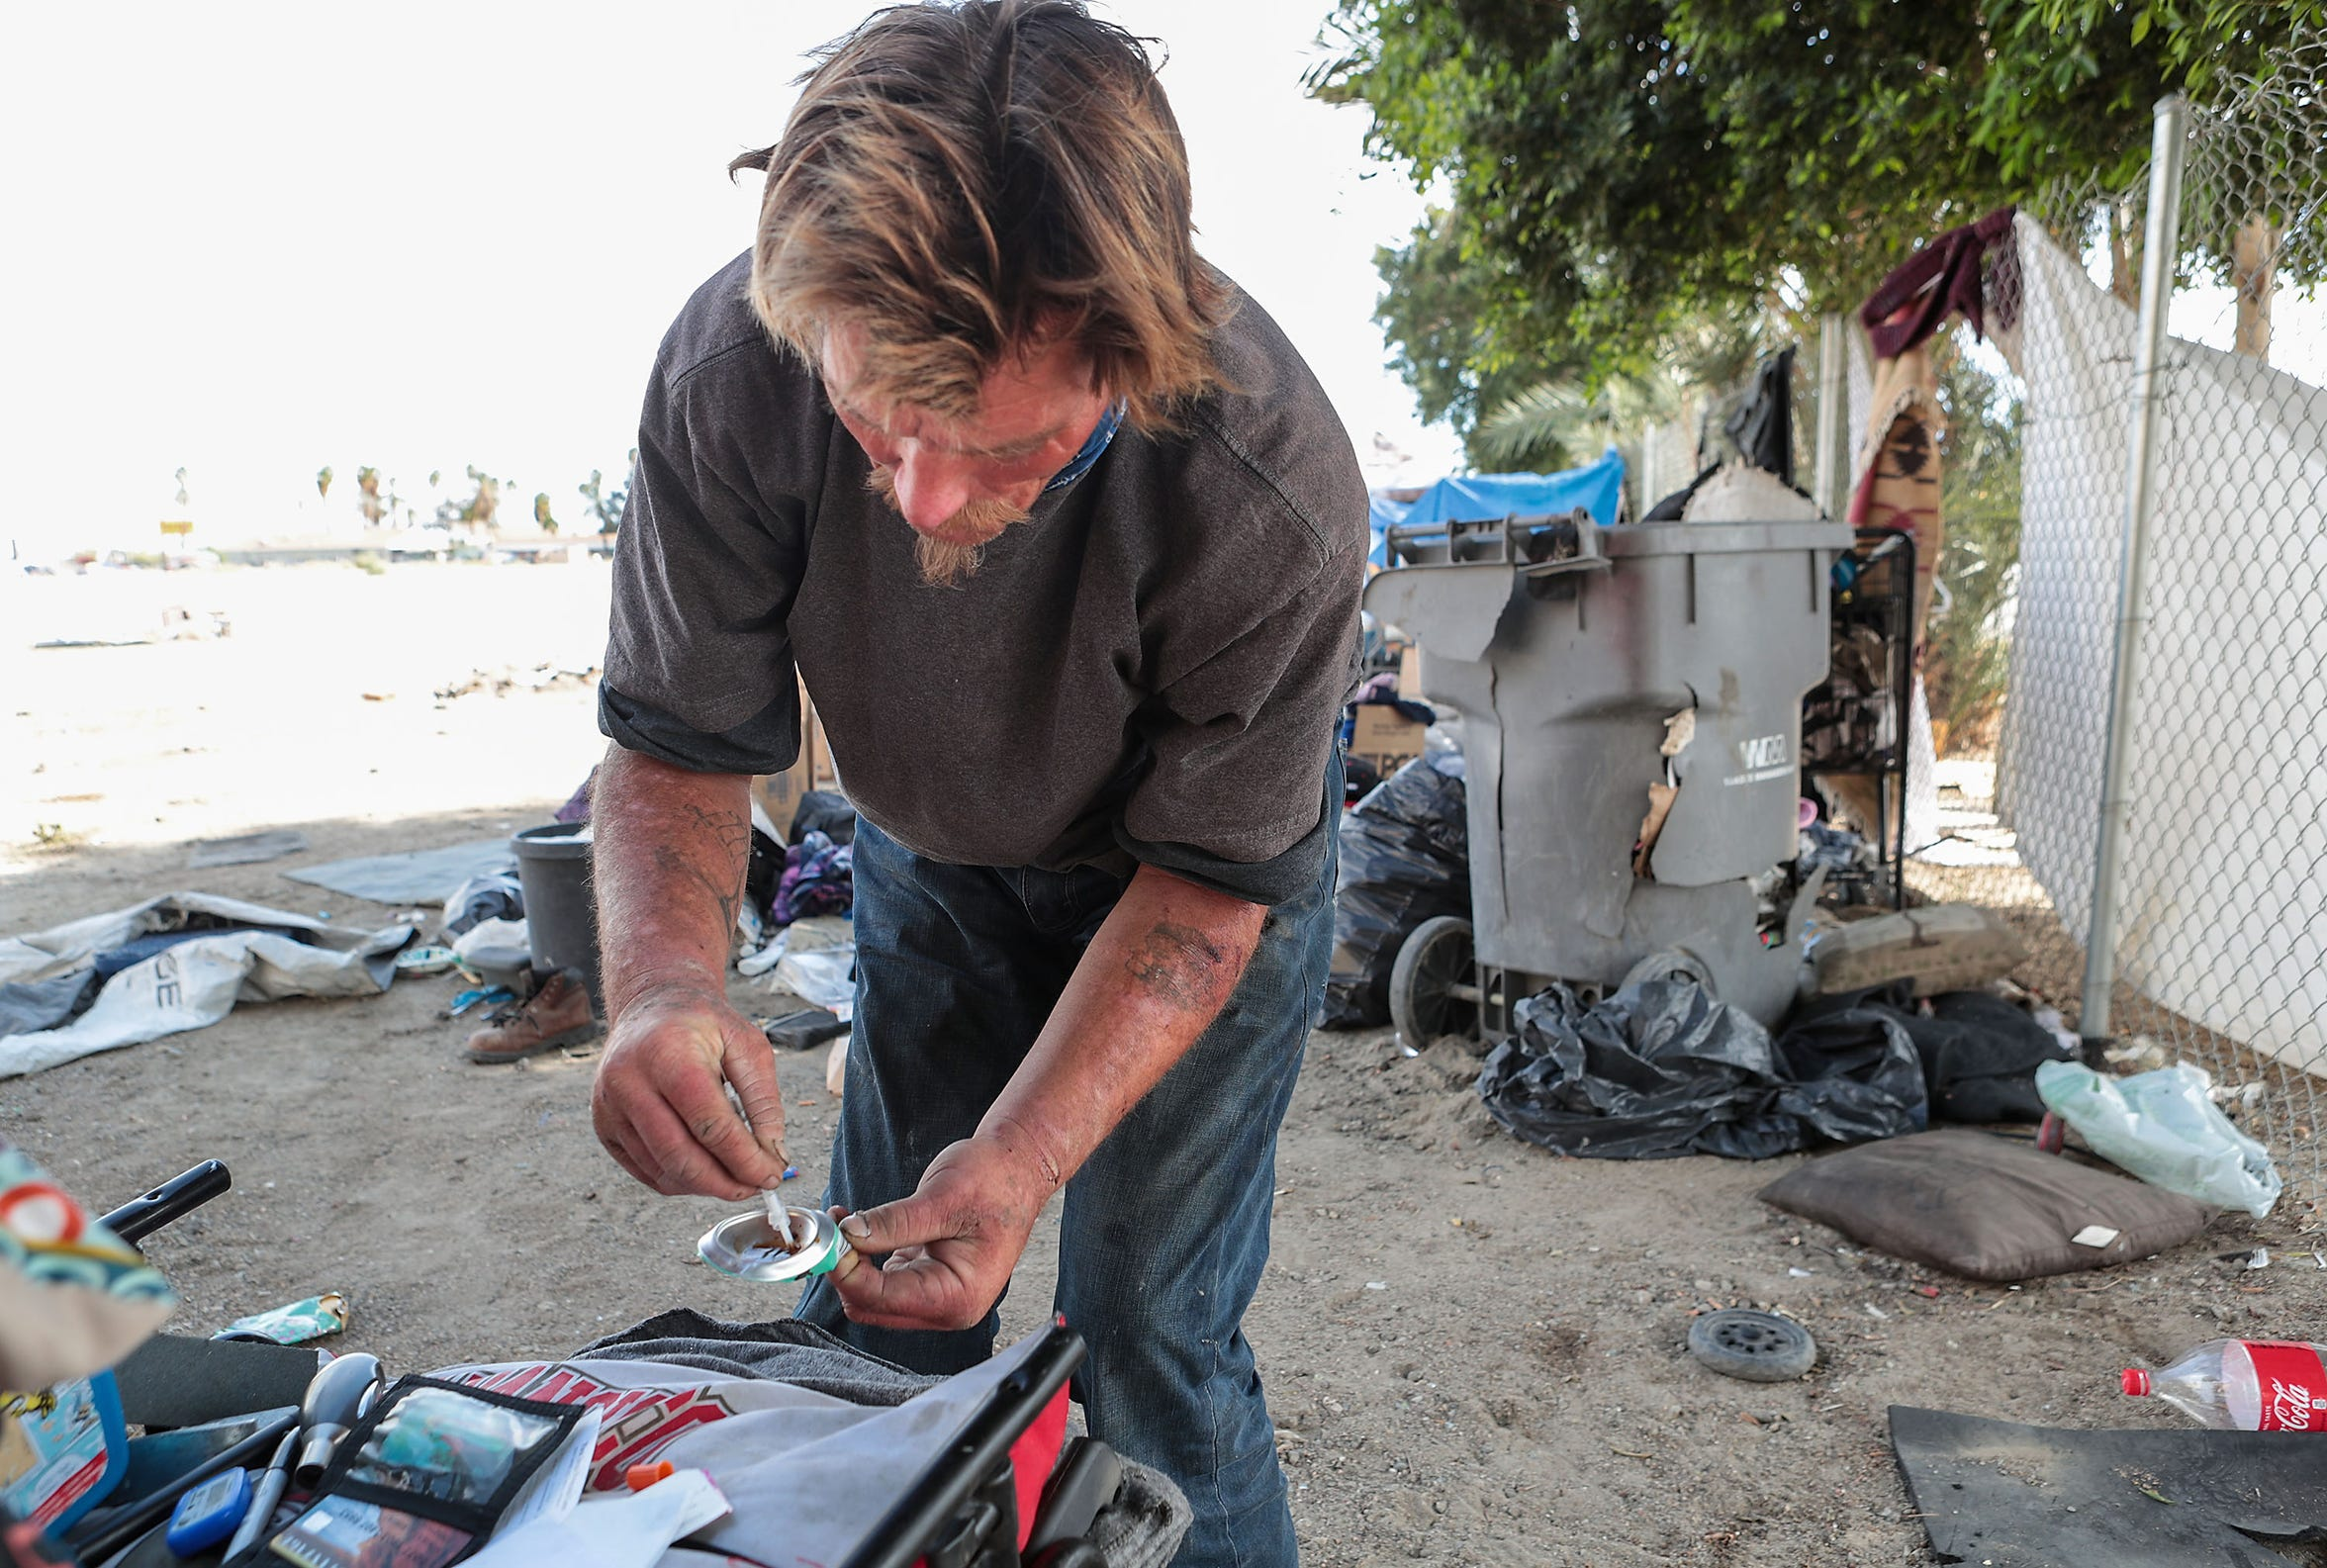 Robert Hensley prepares heroin using the bottom of an aluminum can and a syringe in Indio, April 8, 2019.